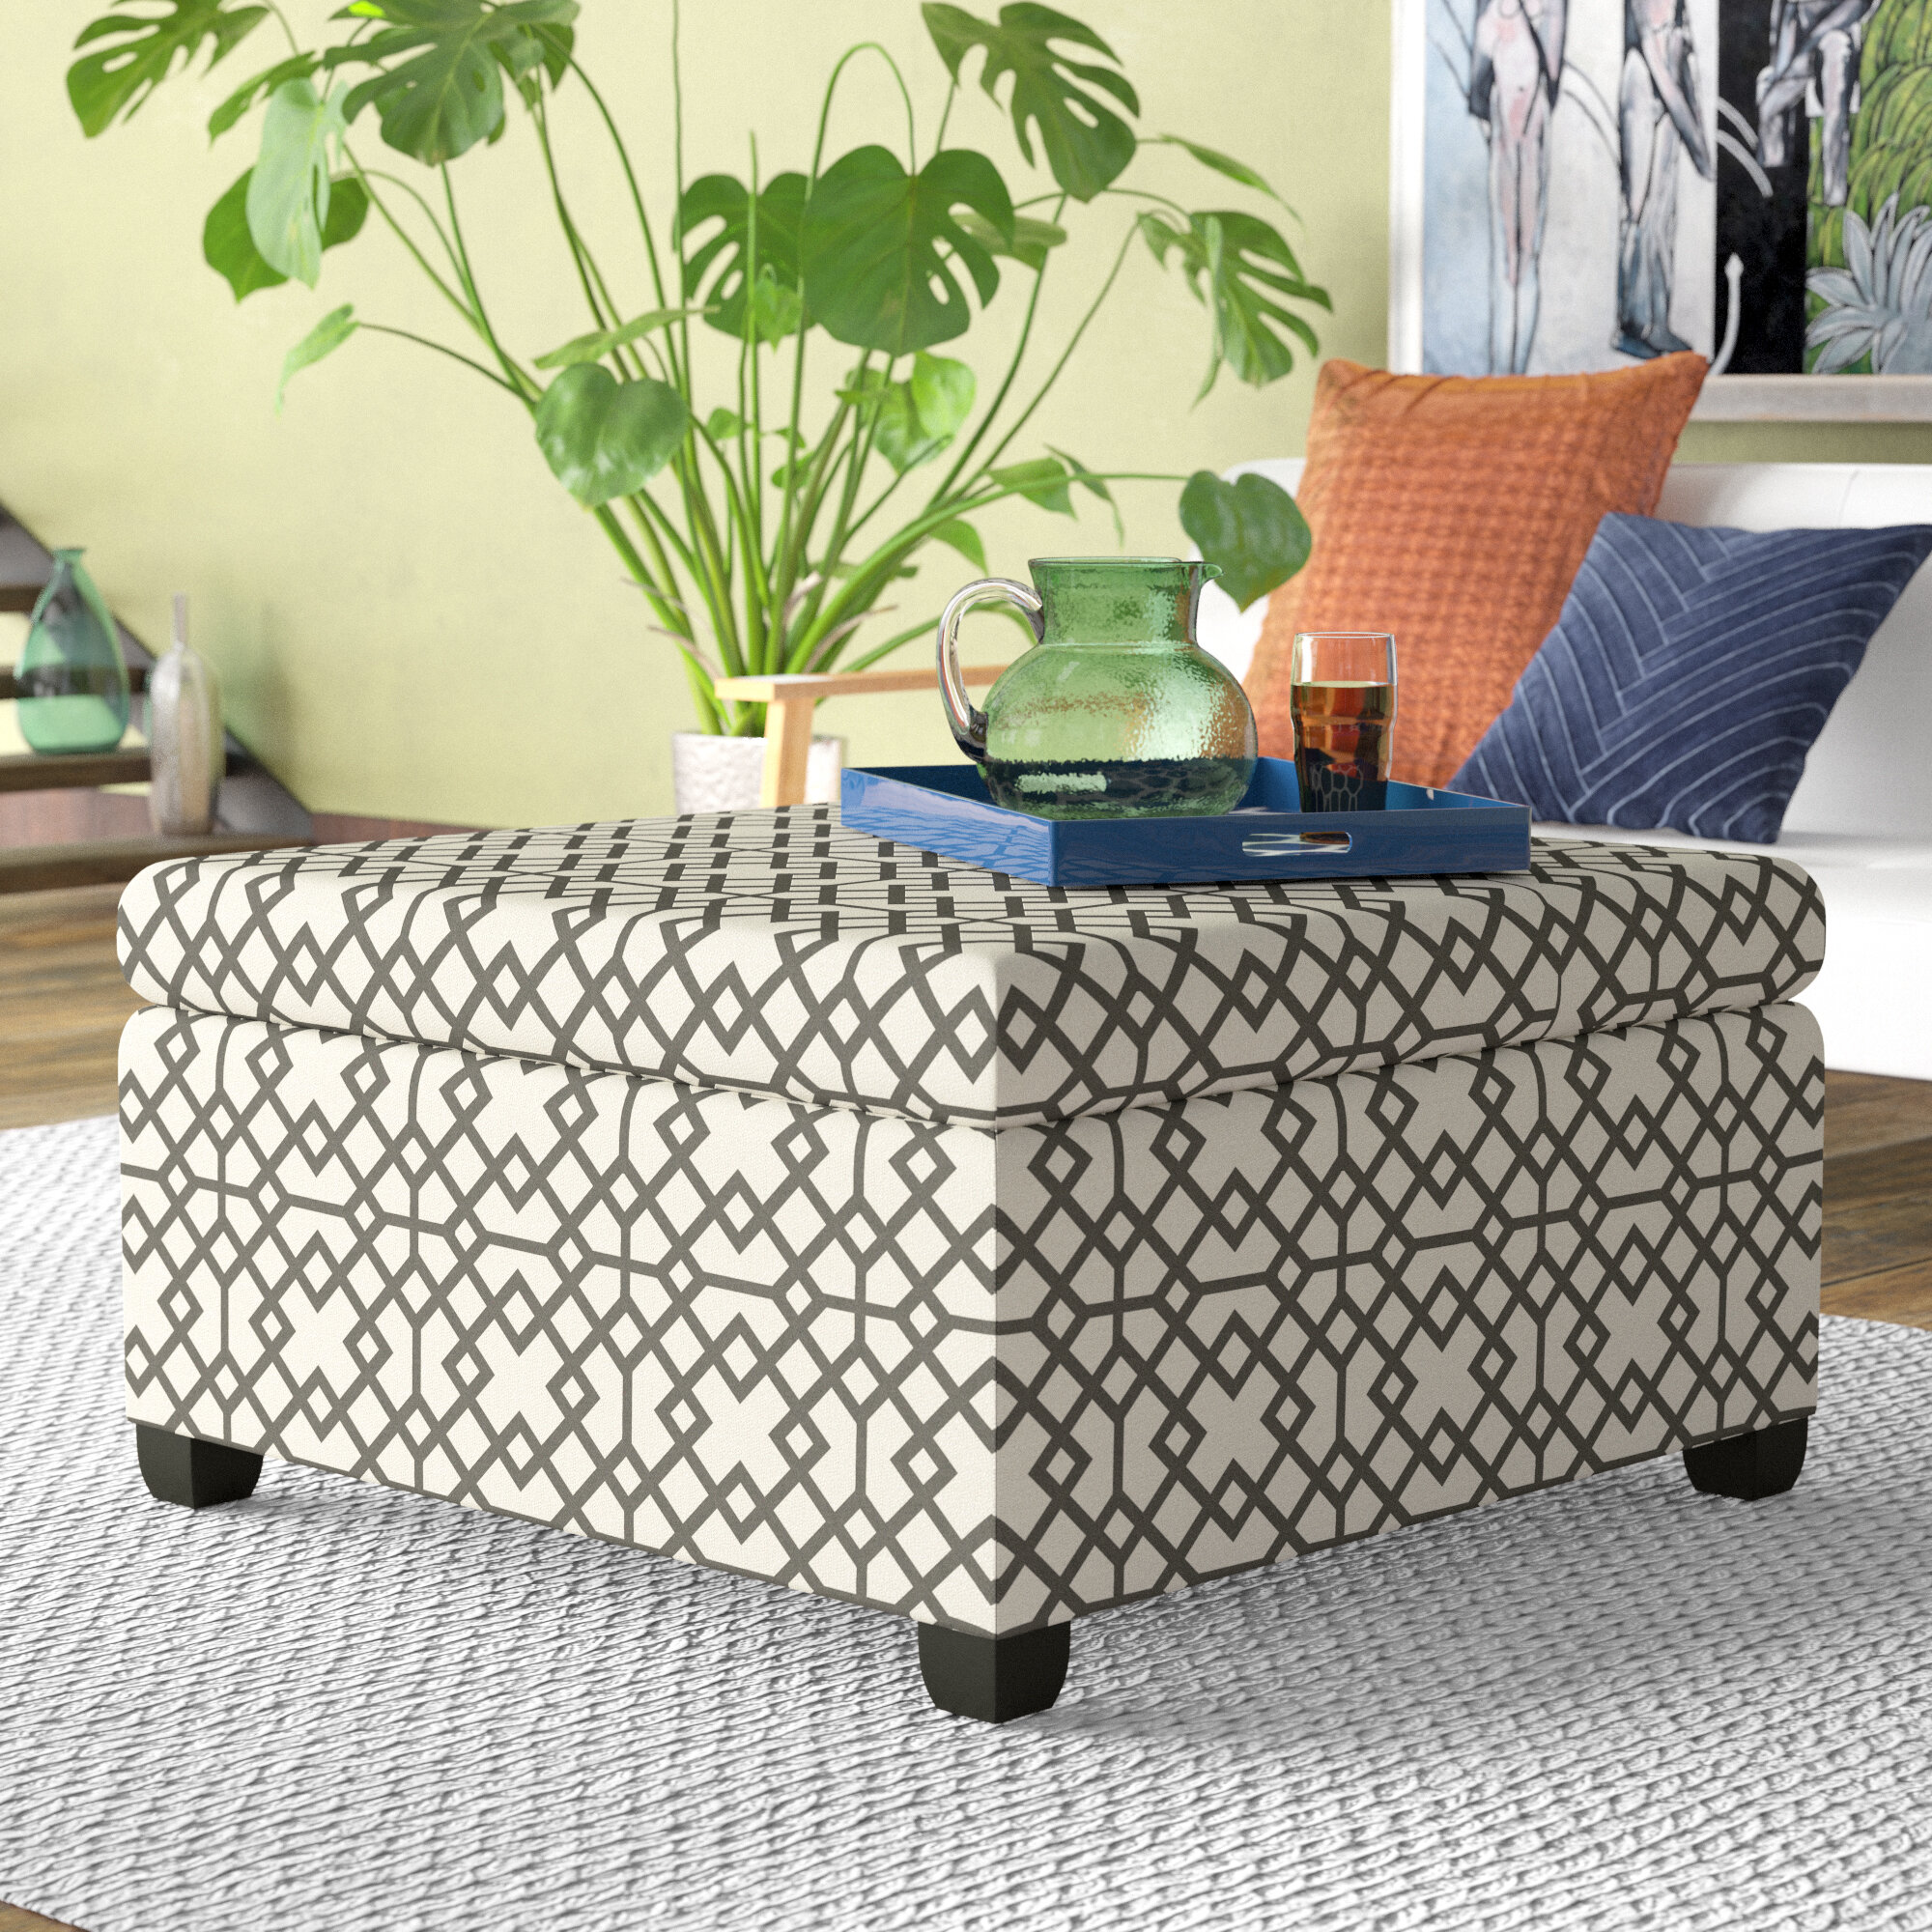 number floral signature accent by item ashley design products oversized rectangular seafoam ottoman daystar